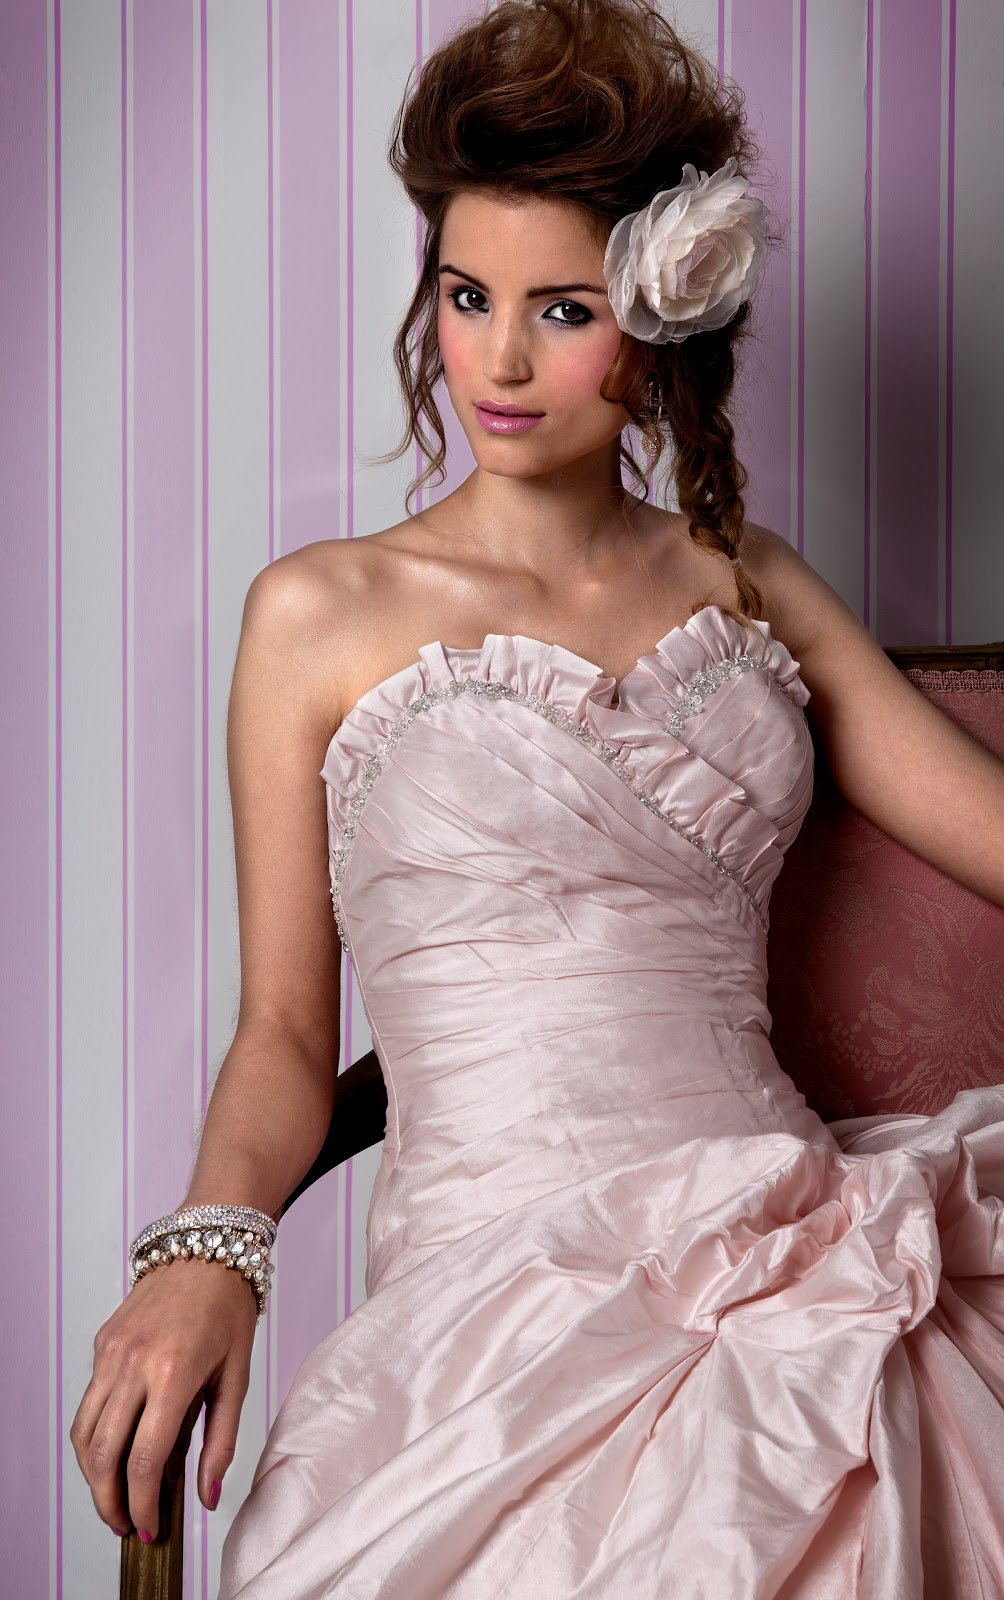 d121876e54b93 Charlotte Balbier Trunk Show in Clitheroe this weekend!